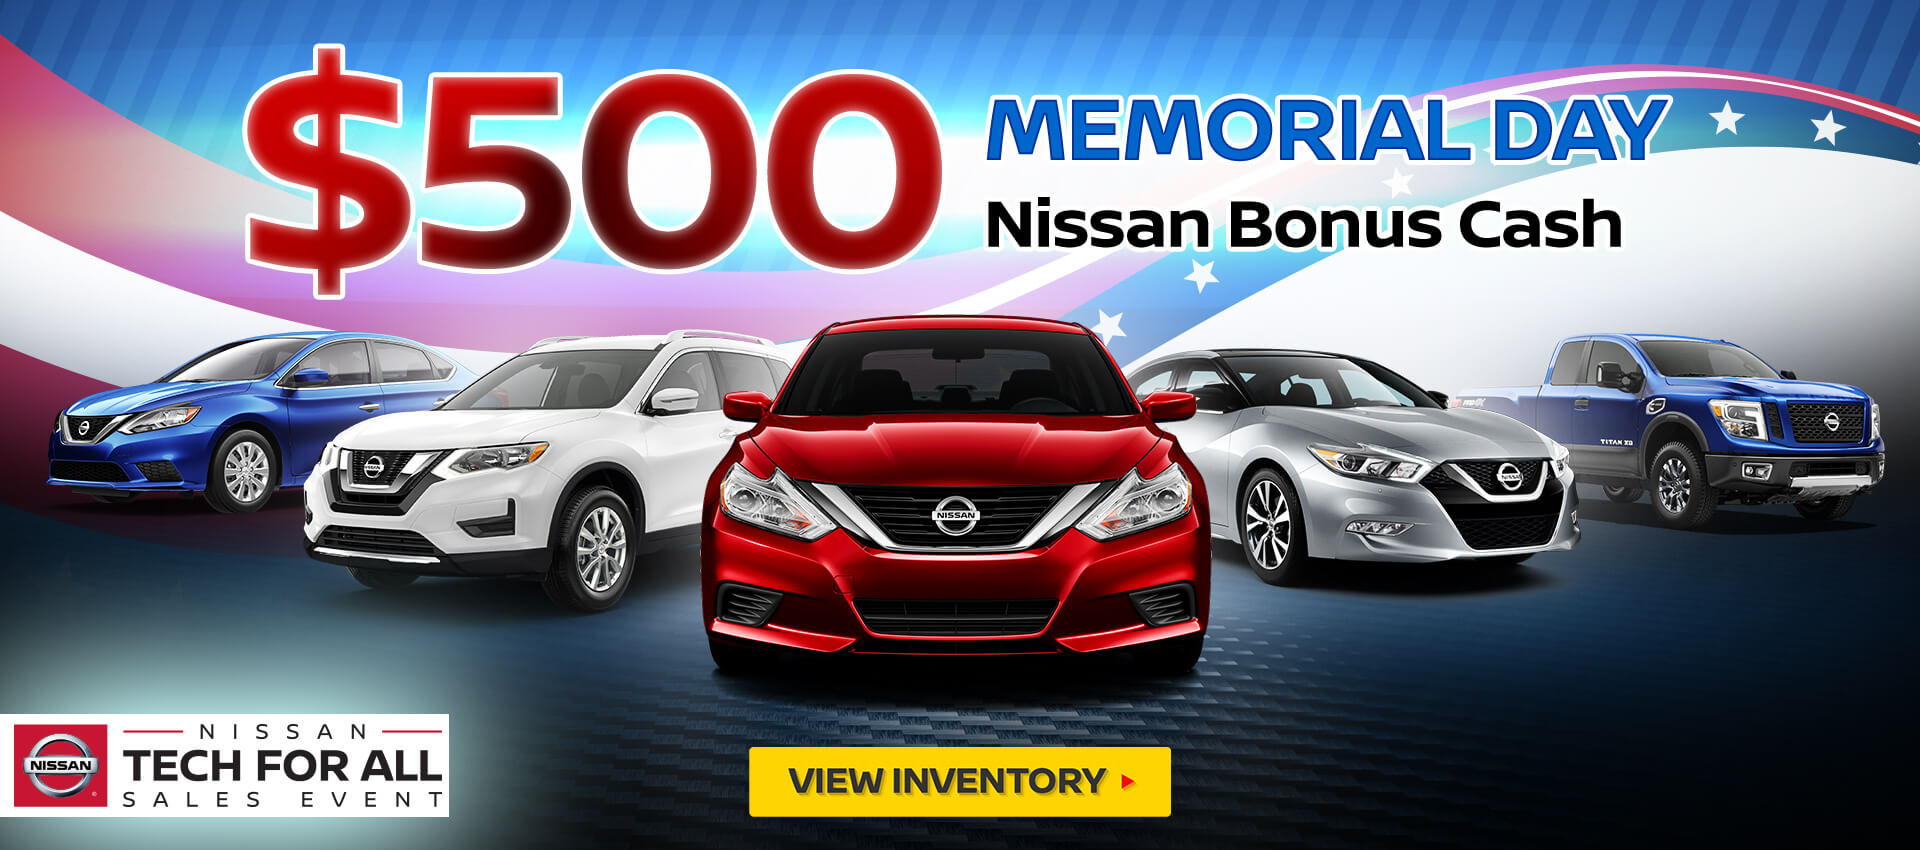 Nissan Memorial Day Bonus Cash